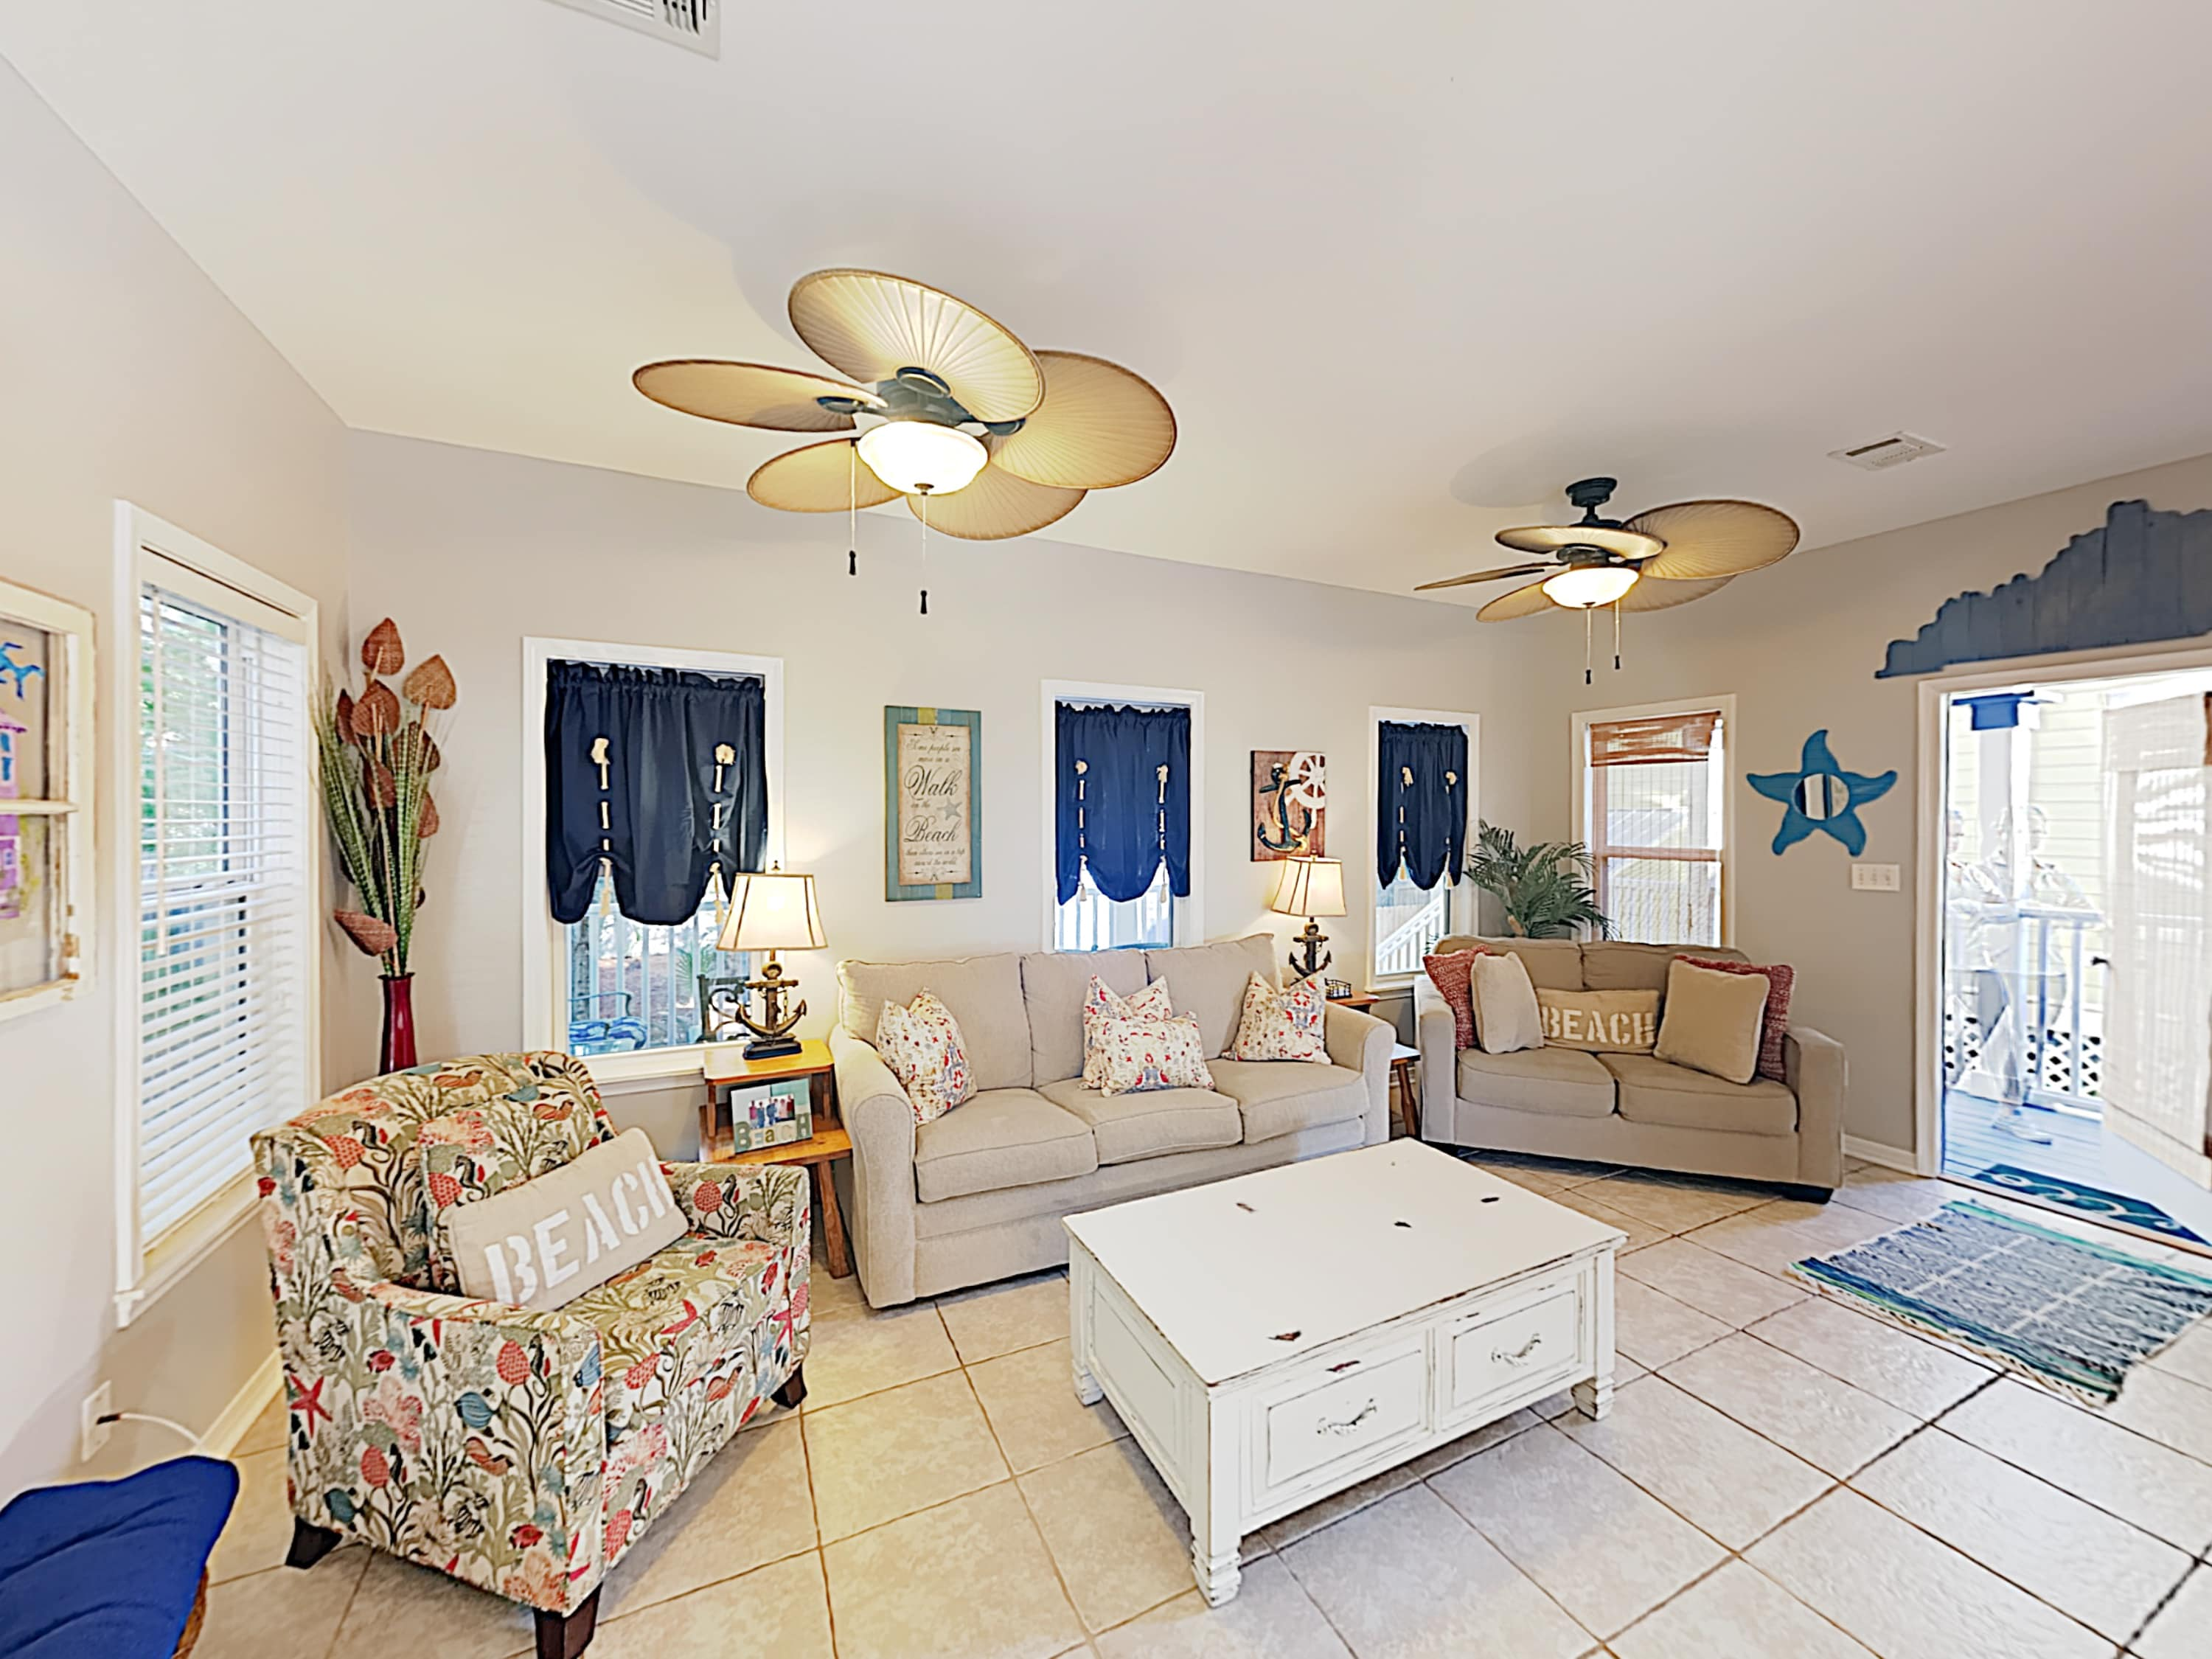 The cozy living area has seaside decor and seating for 6 on a sofa, love seat, and armchair.